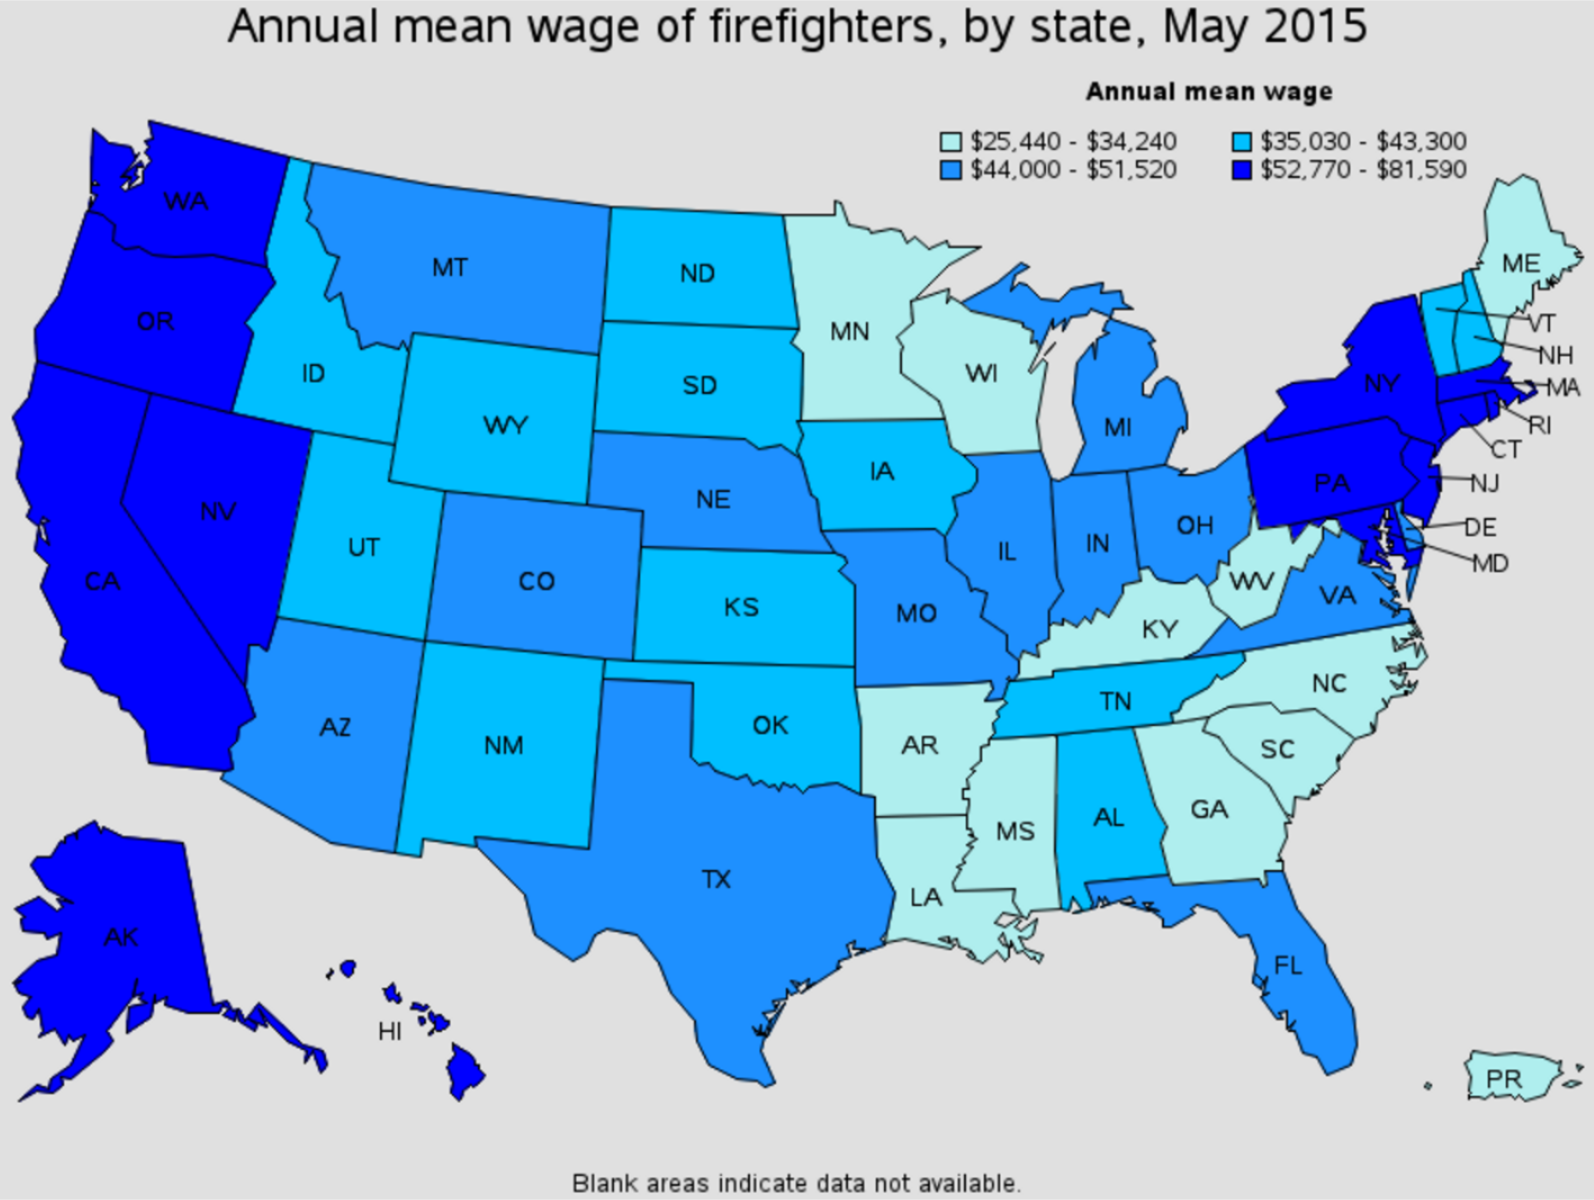 firefighter average salary by state Wellsburg West Virginia